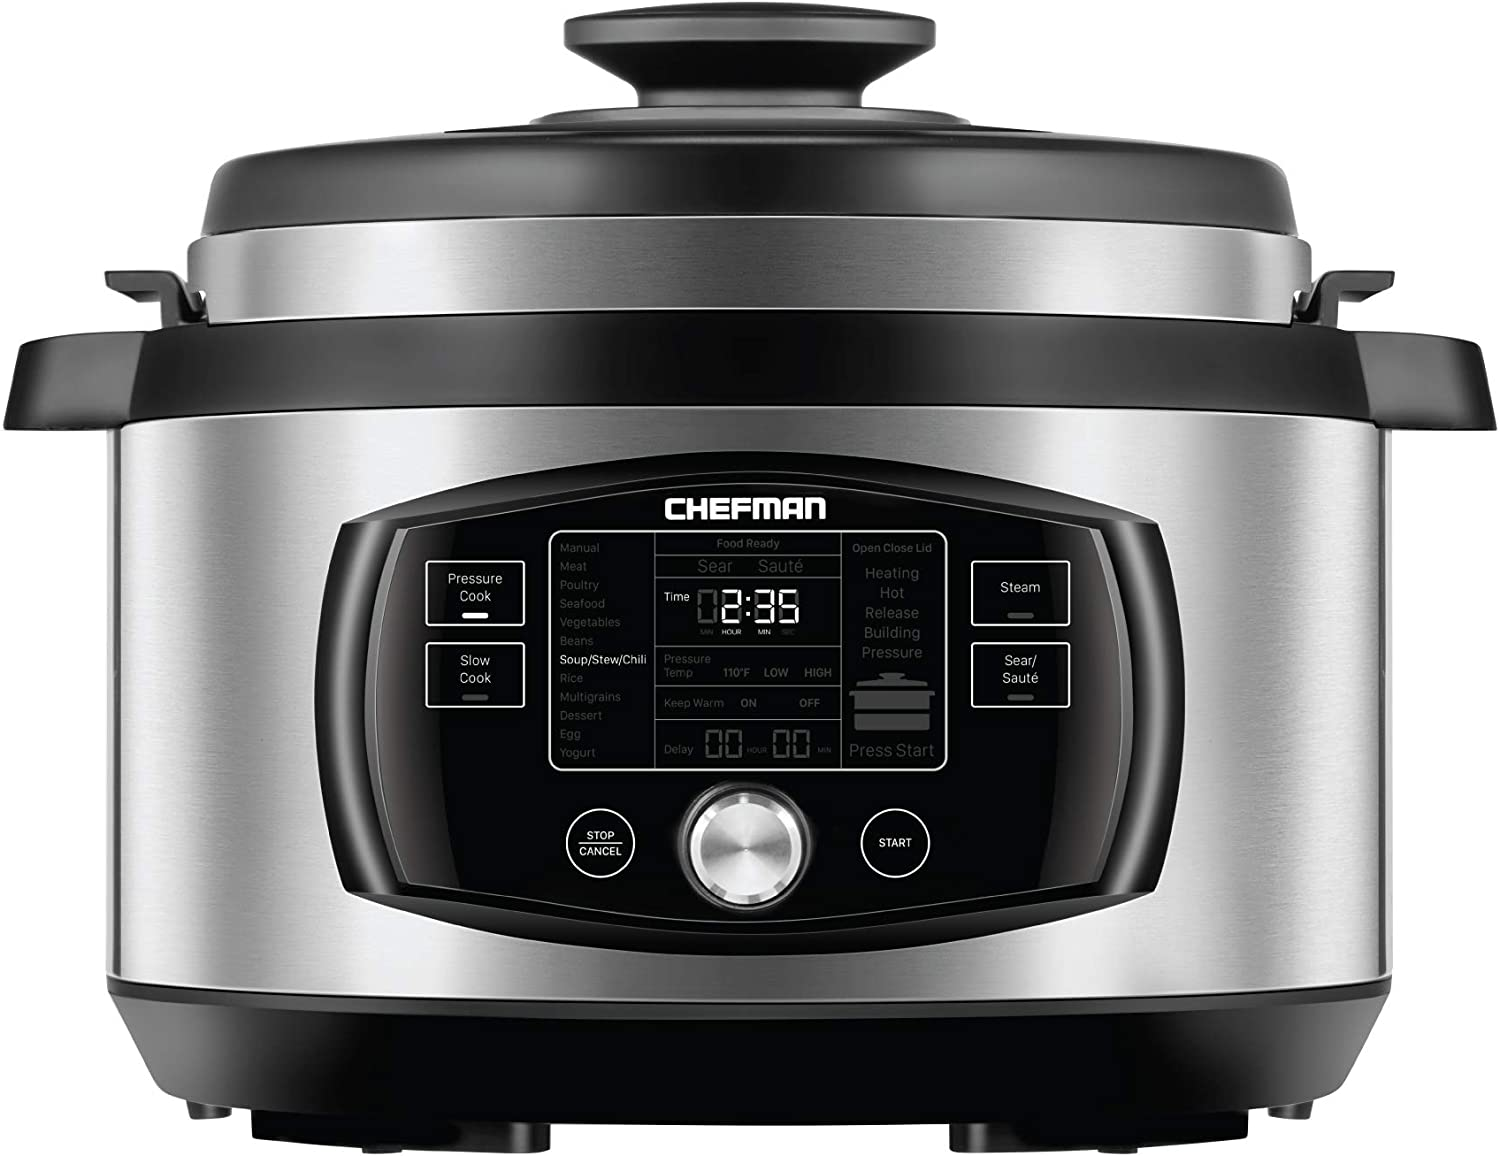 Chefman Multi-Function Oval Pressure Cooker 8 Quart Extra Large Programmable Multicooker, 18 Presets to Slow Cook, Sauté, Steam, Sear, Nonstick Pot, Accessories & Recipe Book Included, Stainless Steel